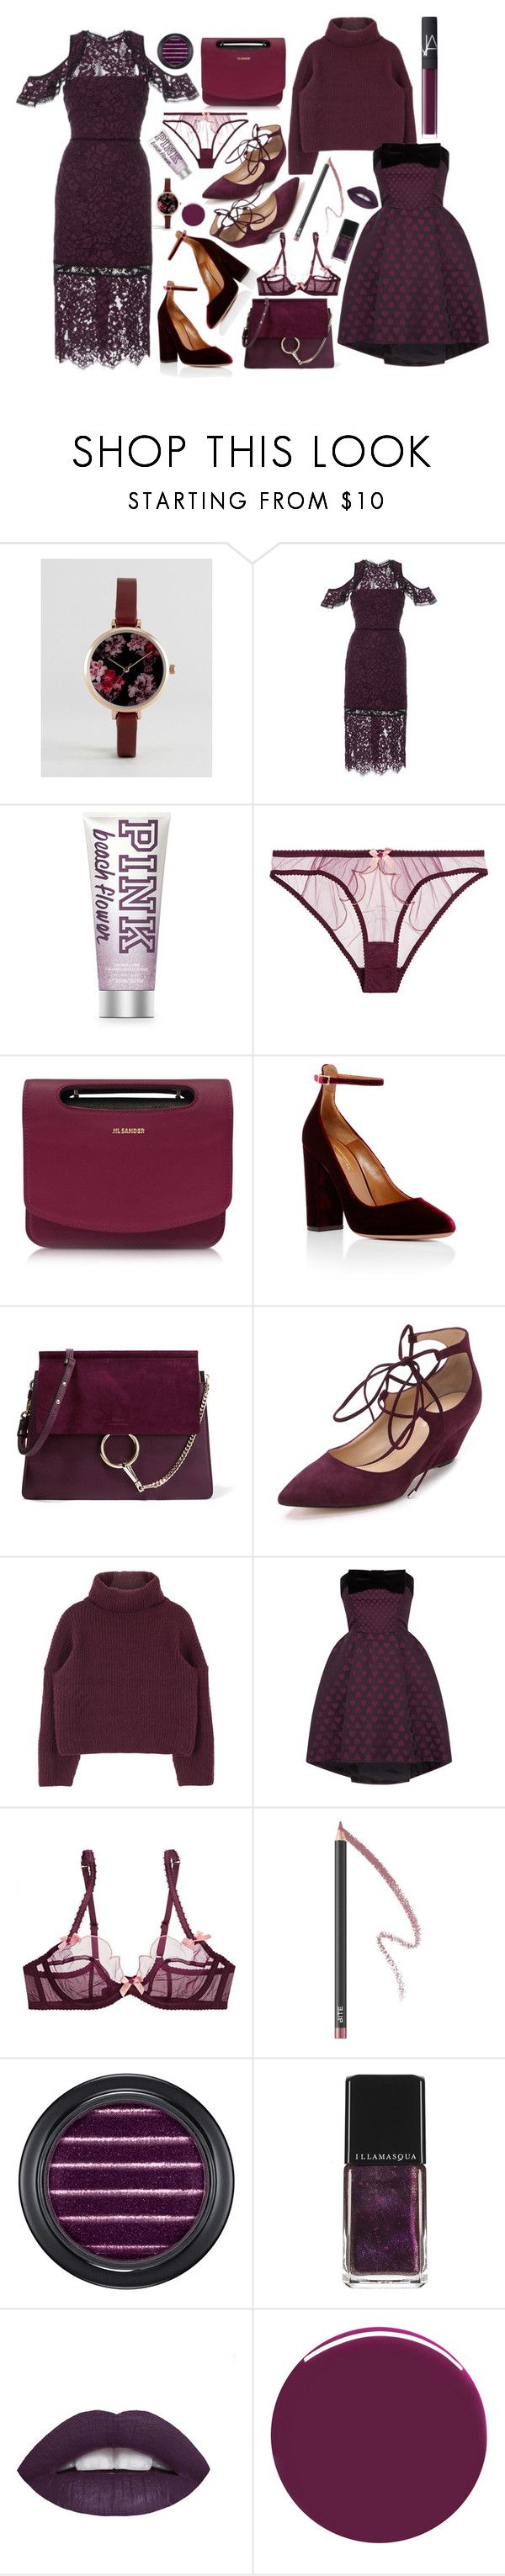 """Blackberry"" by cherieaustin ❤ liked on Polyvore featuring ASOS, Alexis, Agent Provocateur, Jil Sander, Aquazzura, Chloé, belle by Sigerson Morrison, Coast, Bite and MAC Cosmetics"